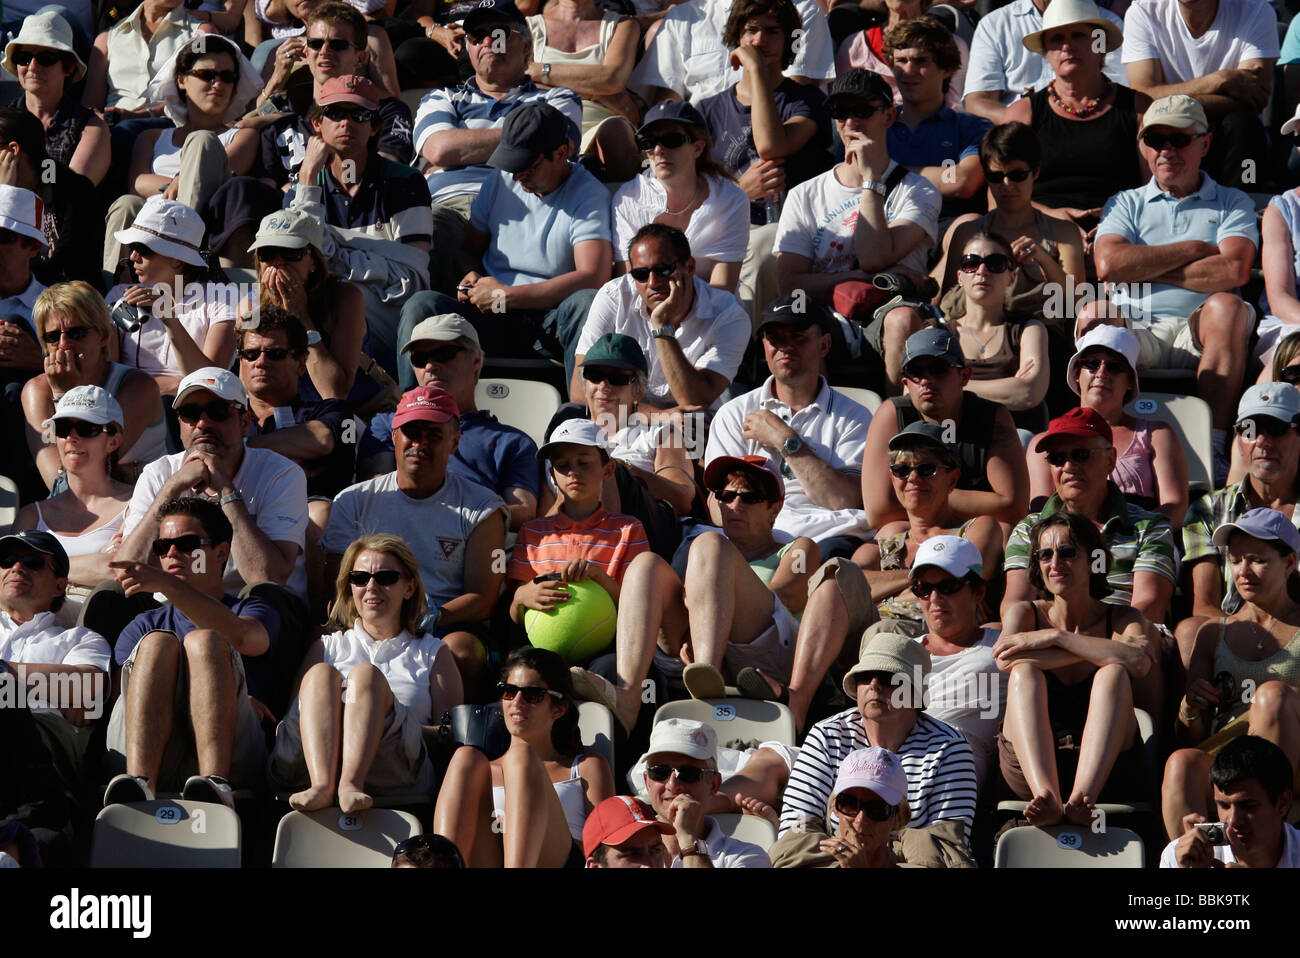 Section of the crowd at the French Open 2009 - Stock Image